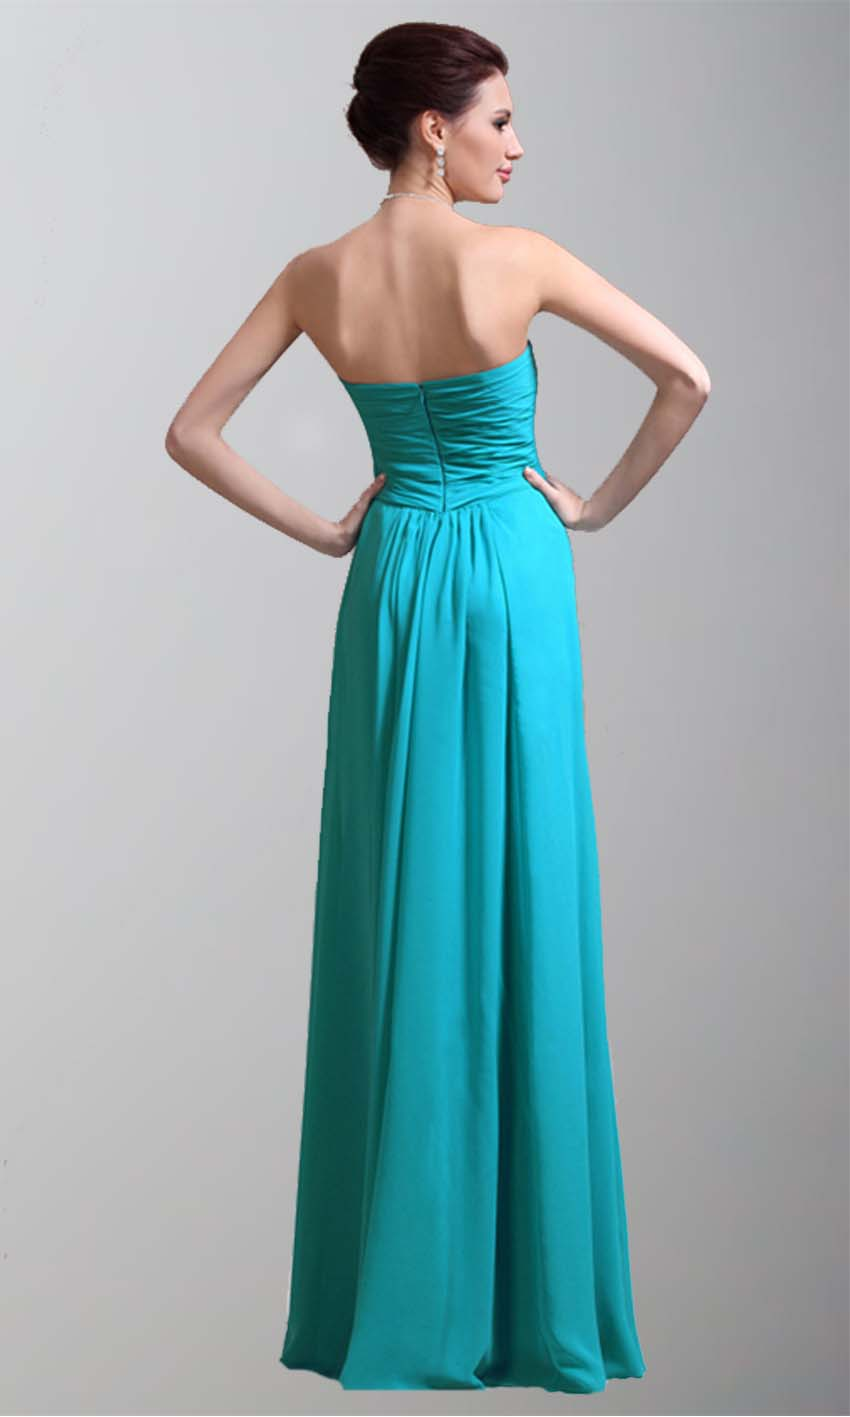 Long Chiffon Sweetheart Strapless Prom Dress KSP137 [KSP137] - £99.00 : Cheap Prom Dresses Uk, Bridesmaid Dresses, 2014 Prom & Evening Dresses, Look for cheap elegant prom dresses 2014, cocktail gowns, or dresses for special occasions? kissprom.co.uk offers various bridesmaid dresses, evening dress, free shipping to UK etc.